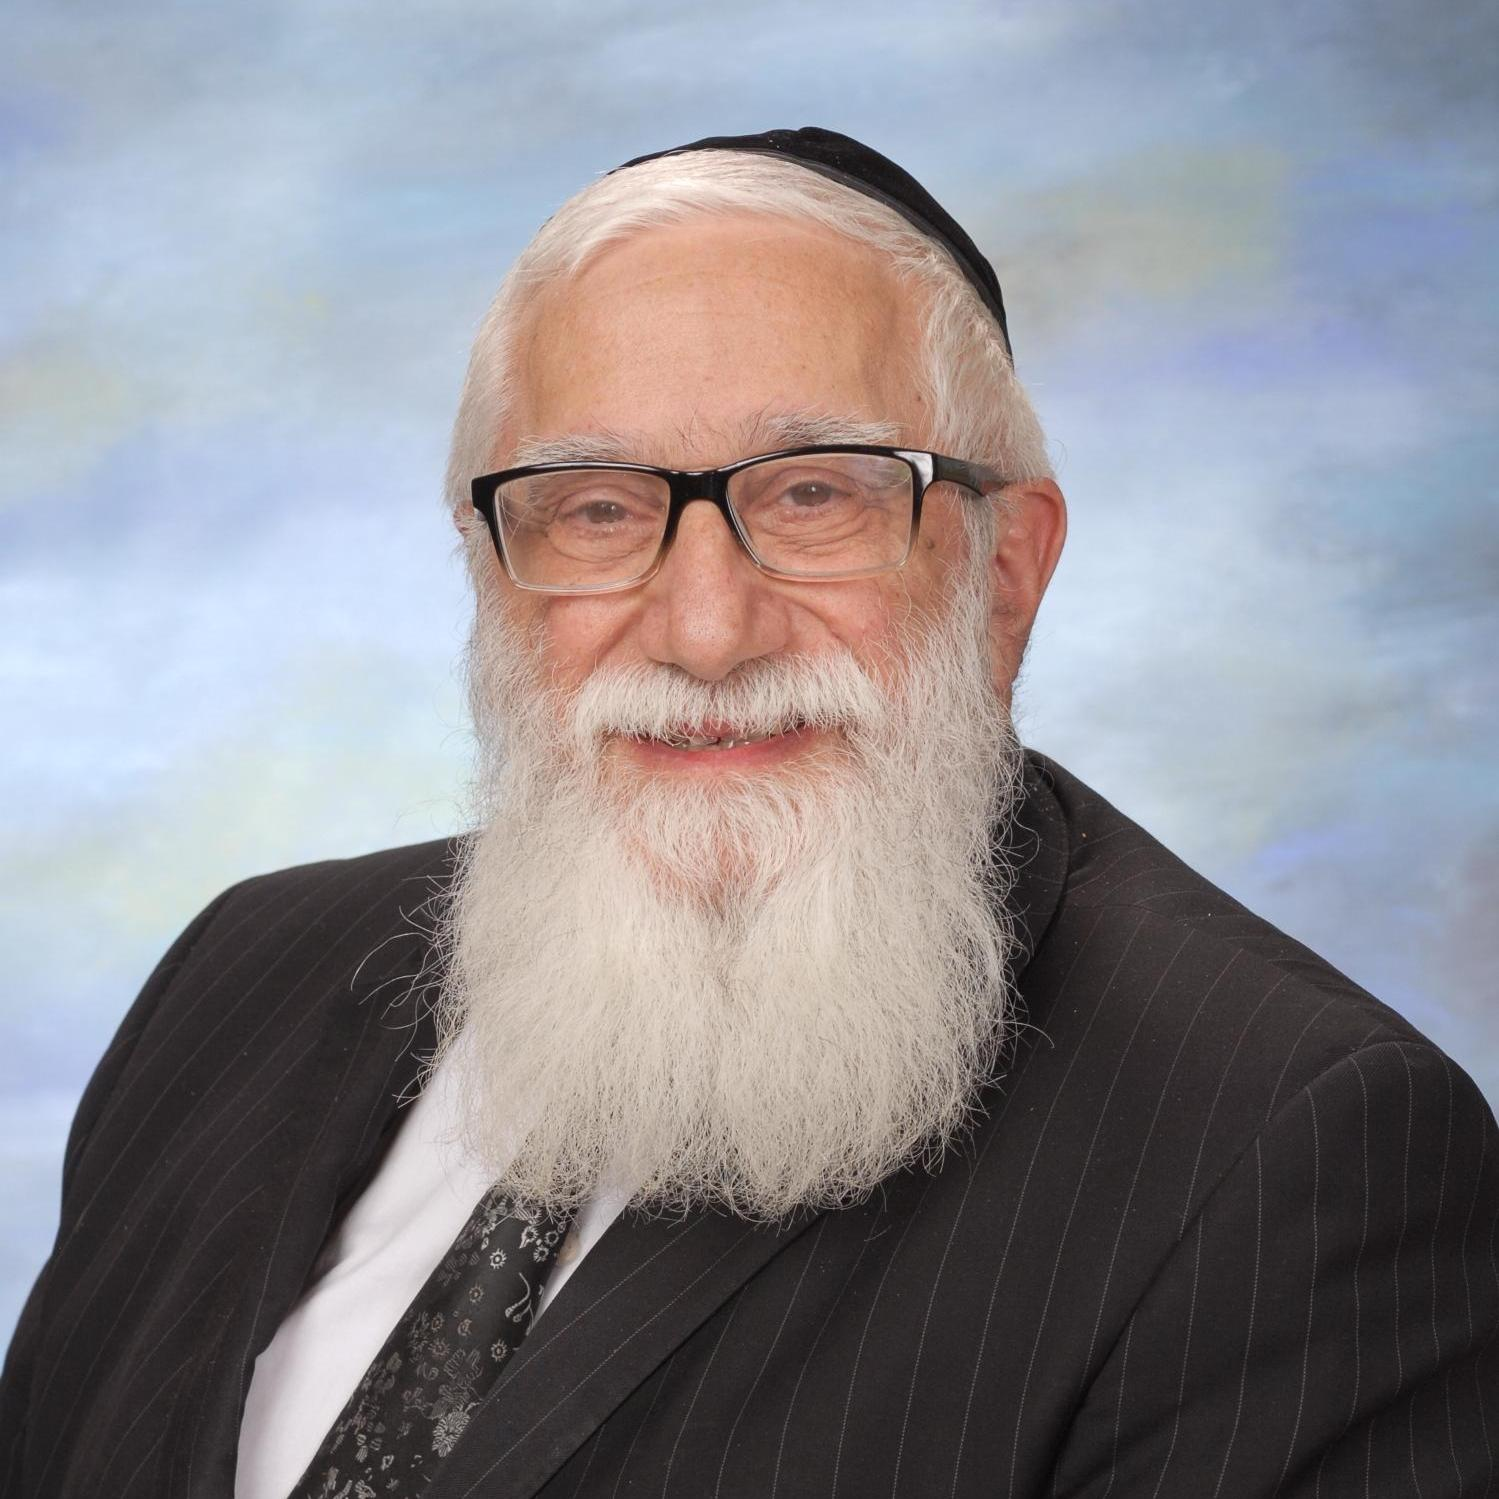 Rabbi Daniel Estreicher's Profile Photo